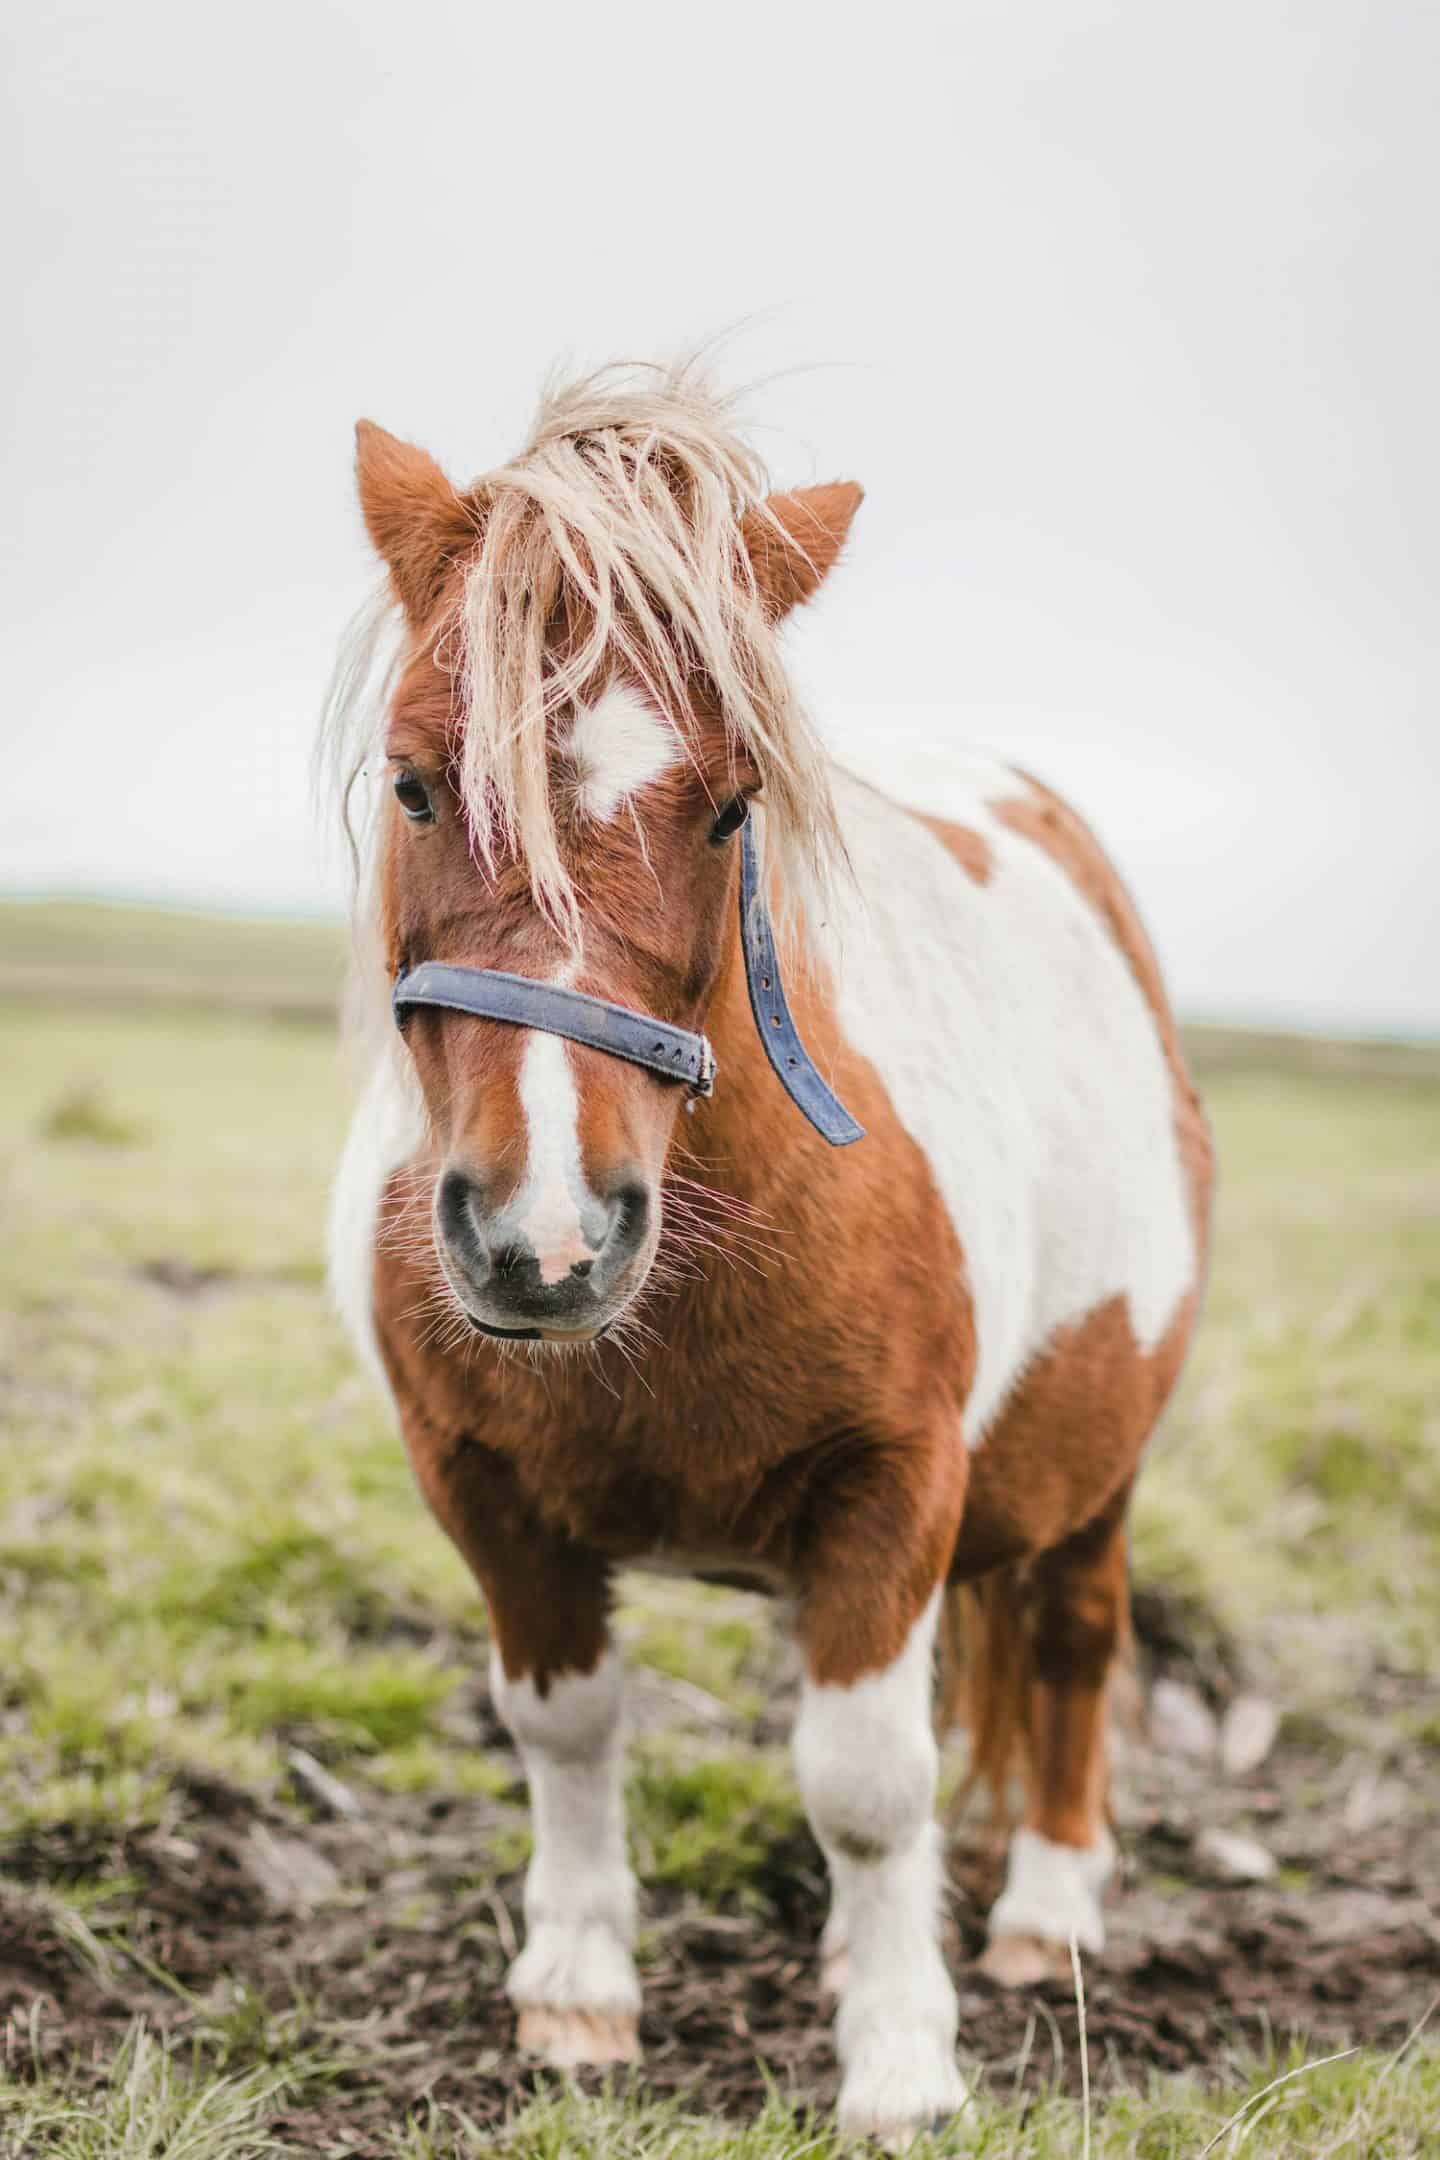 Adorable horses at the Kerry Cliffs in Ireland